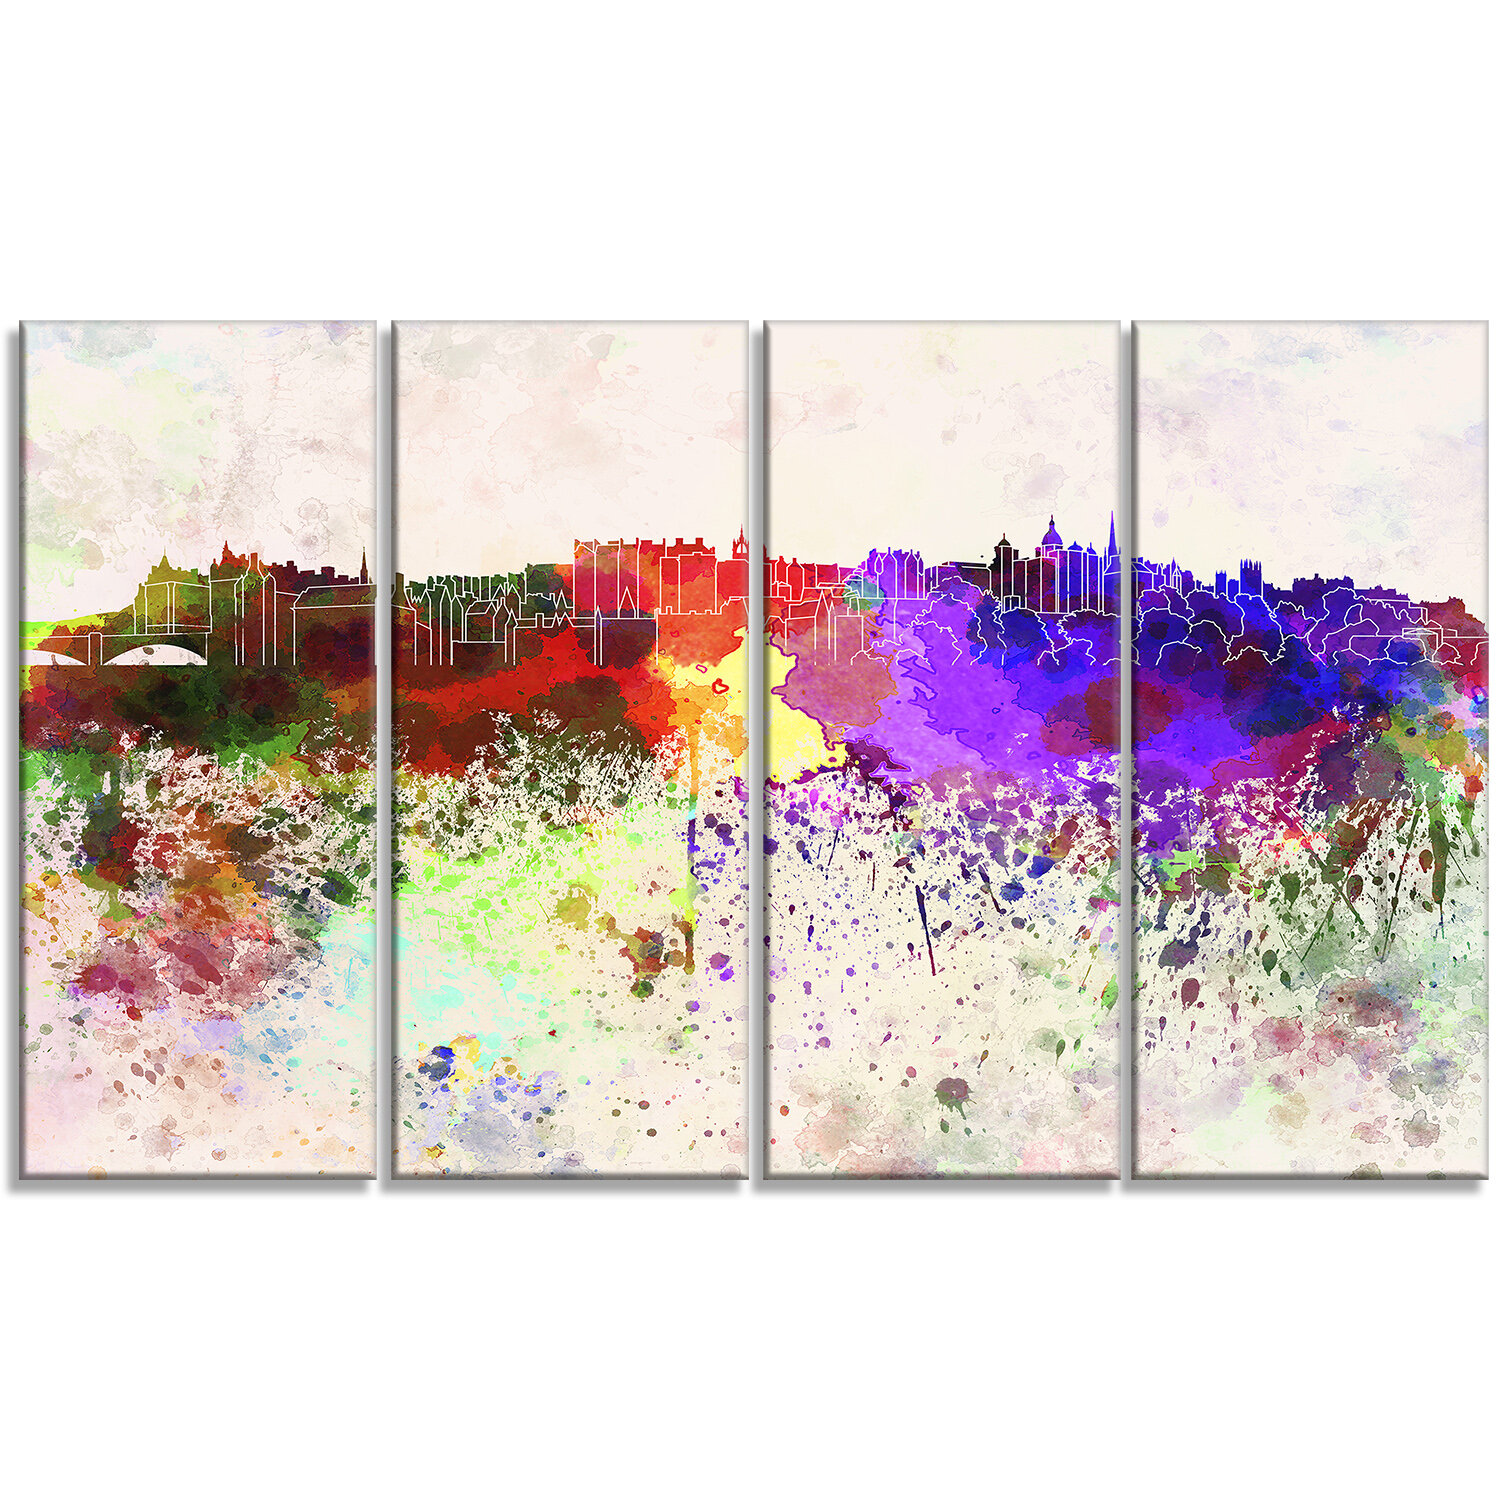 Designart Edinburgh Skyline Cityscape 4 Piece Painting Print On Wrapped Canvas Set Wayfair